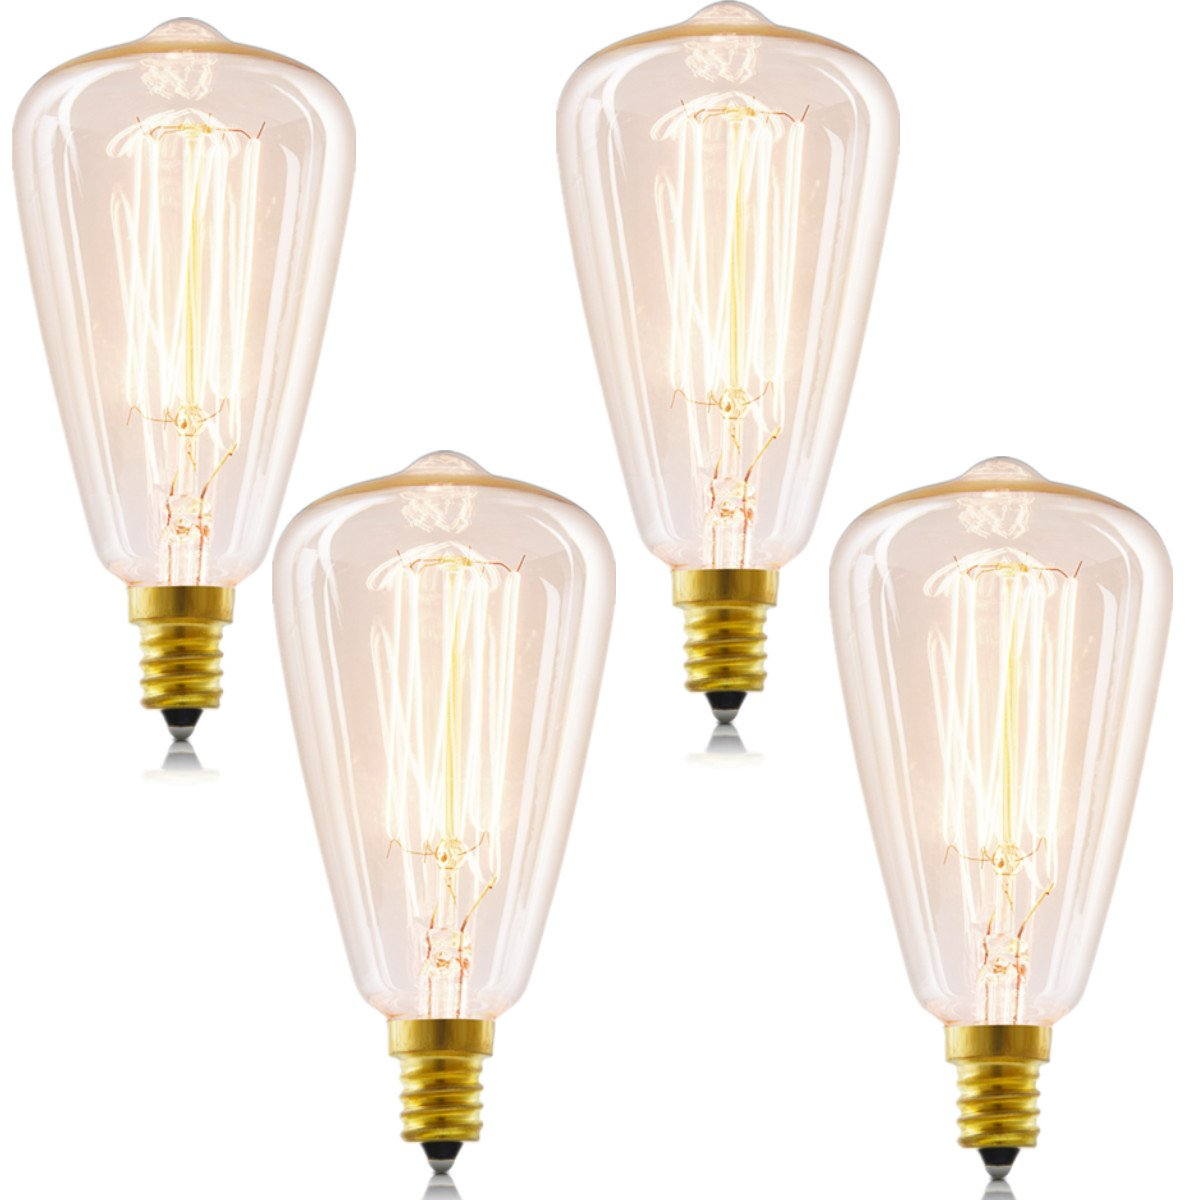 Candelabra Vintage Edison Bulbs, INNOCCY 40W E12 Antique bulb Teardrop Warm White Dimmable Chandelier Edison light, 4 Pack